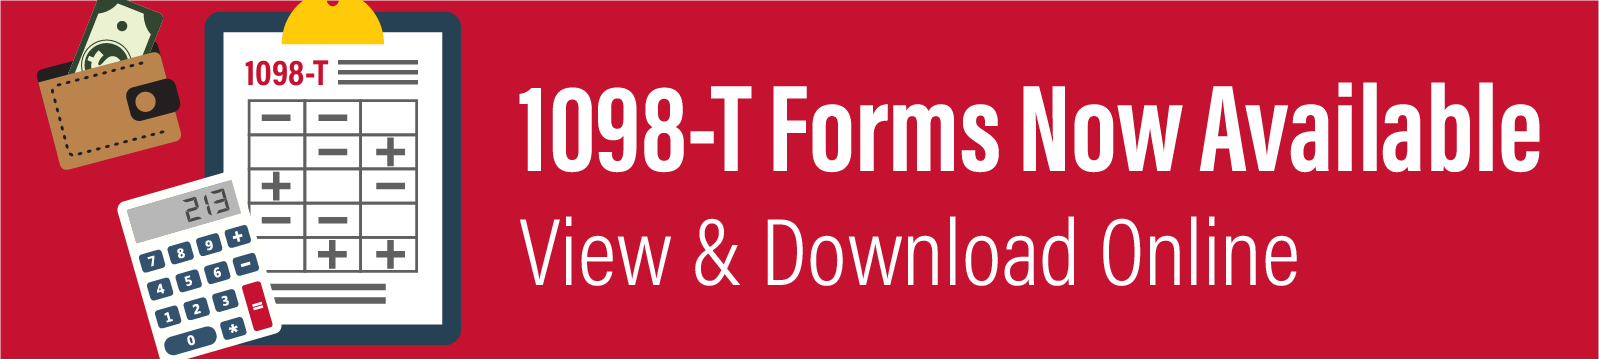 Your 1098-T forms are now available online through your Online Student Account